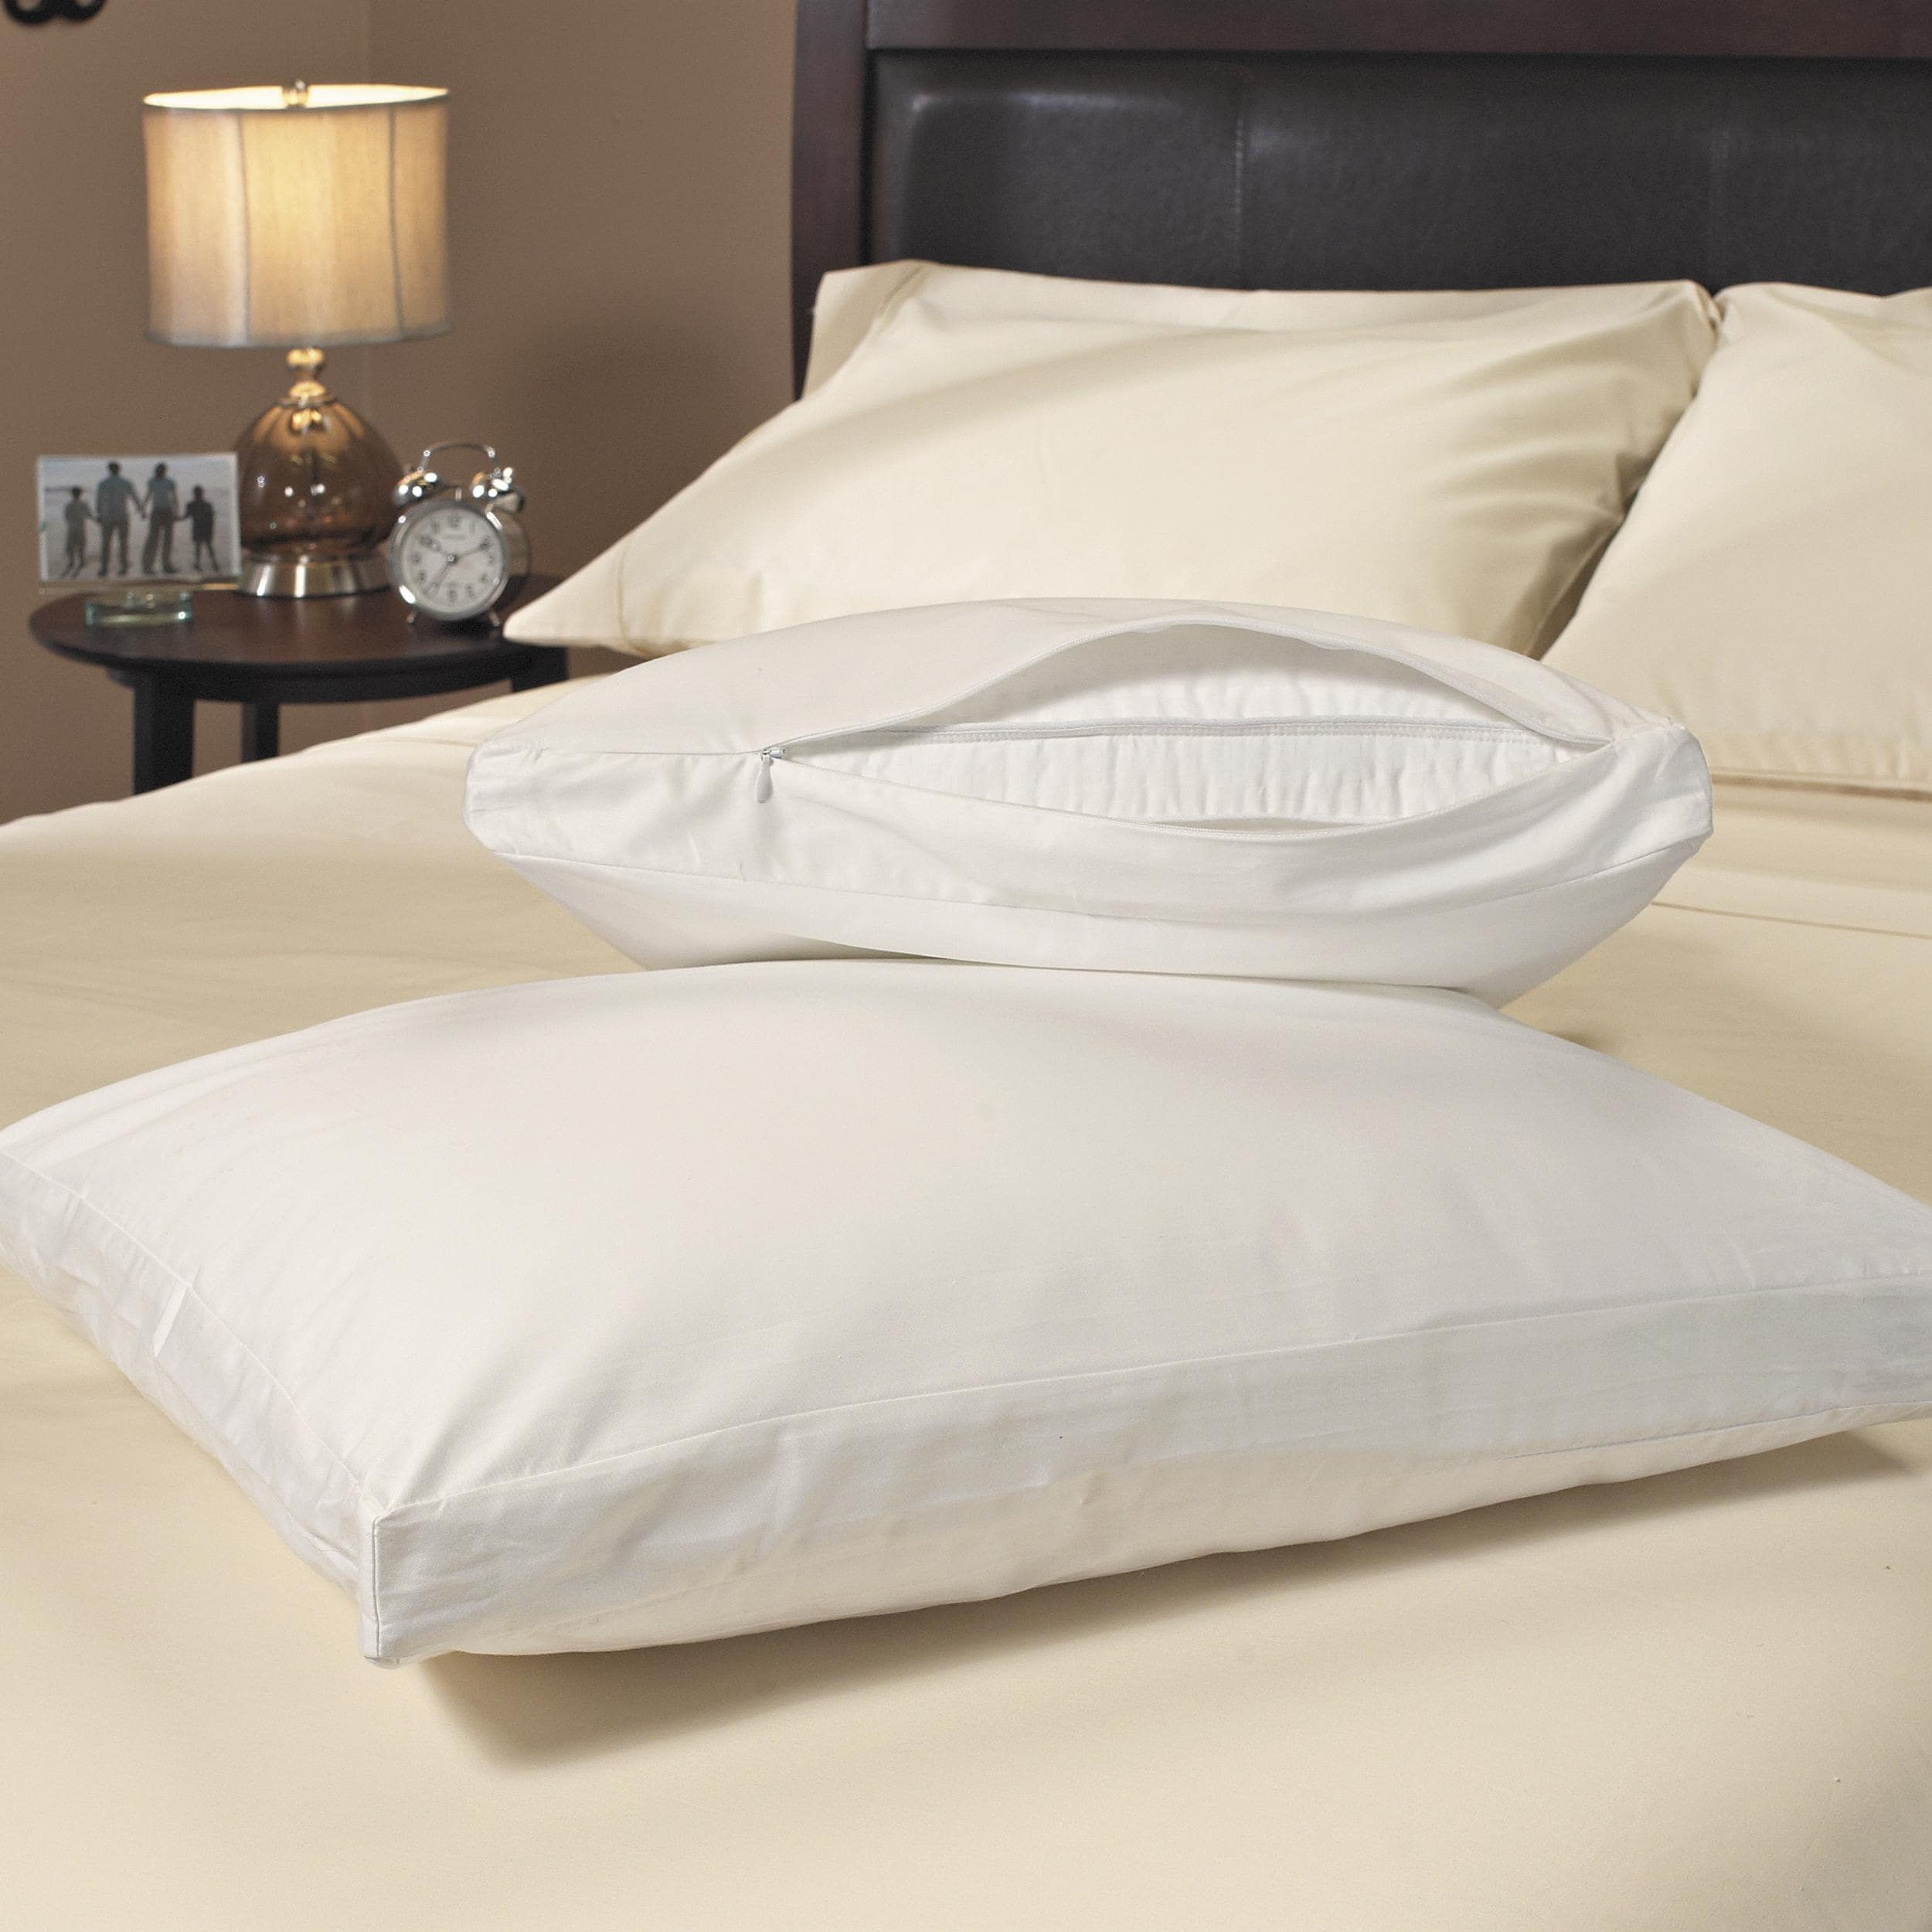 Stain Resistant 300 Thread Count Gusseted Zip Pillow Protector (Set of 2) - White - Thumbnail 0